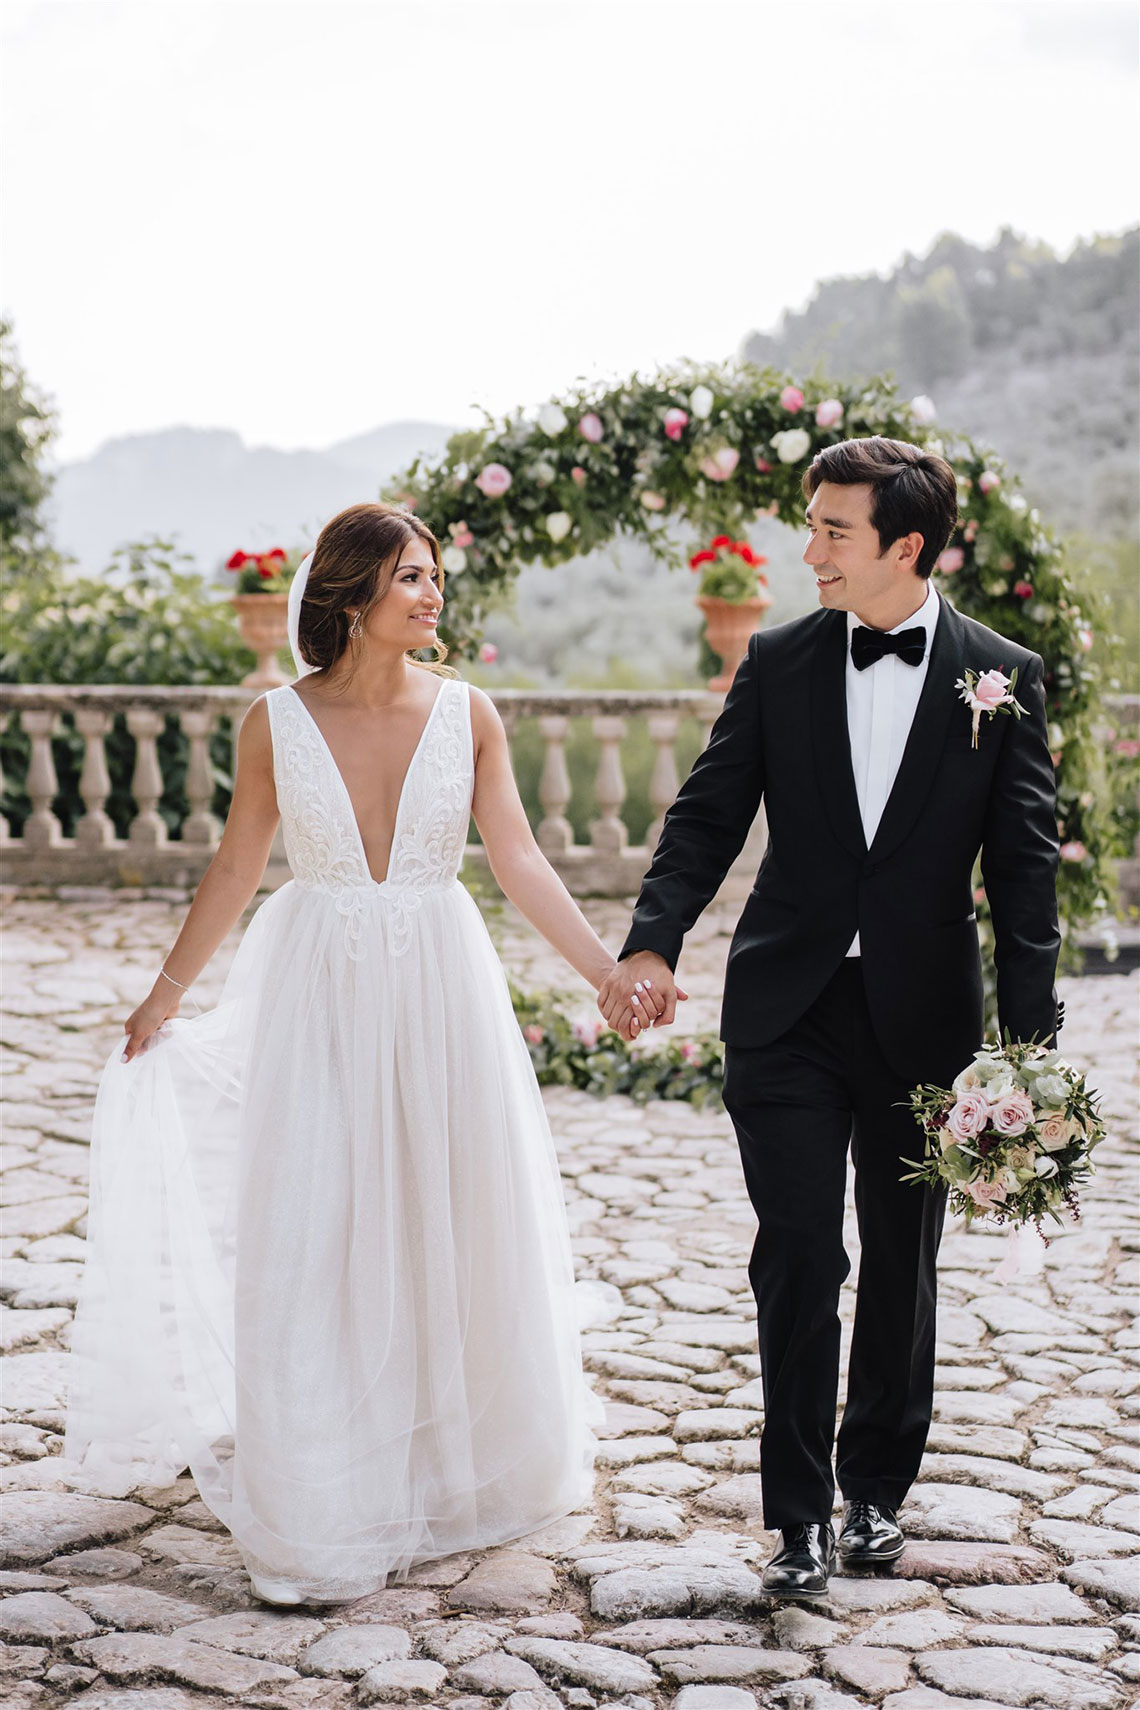 Stunning Rustic Mallorca Destination Wedding – Paco and Aga Photography 22